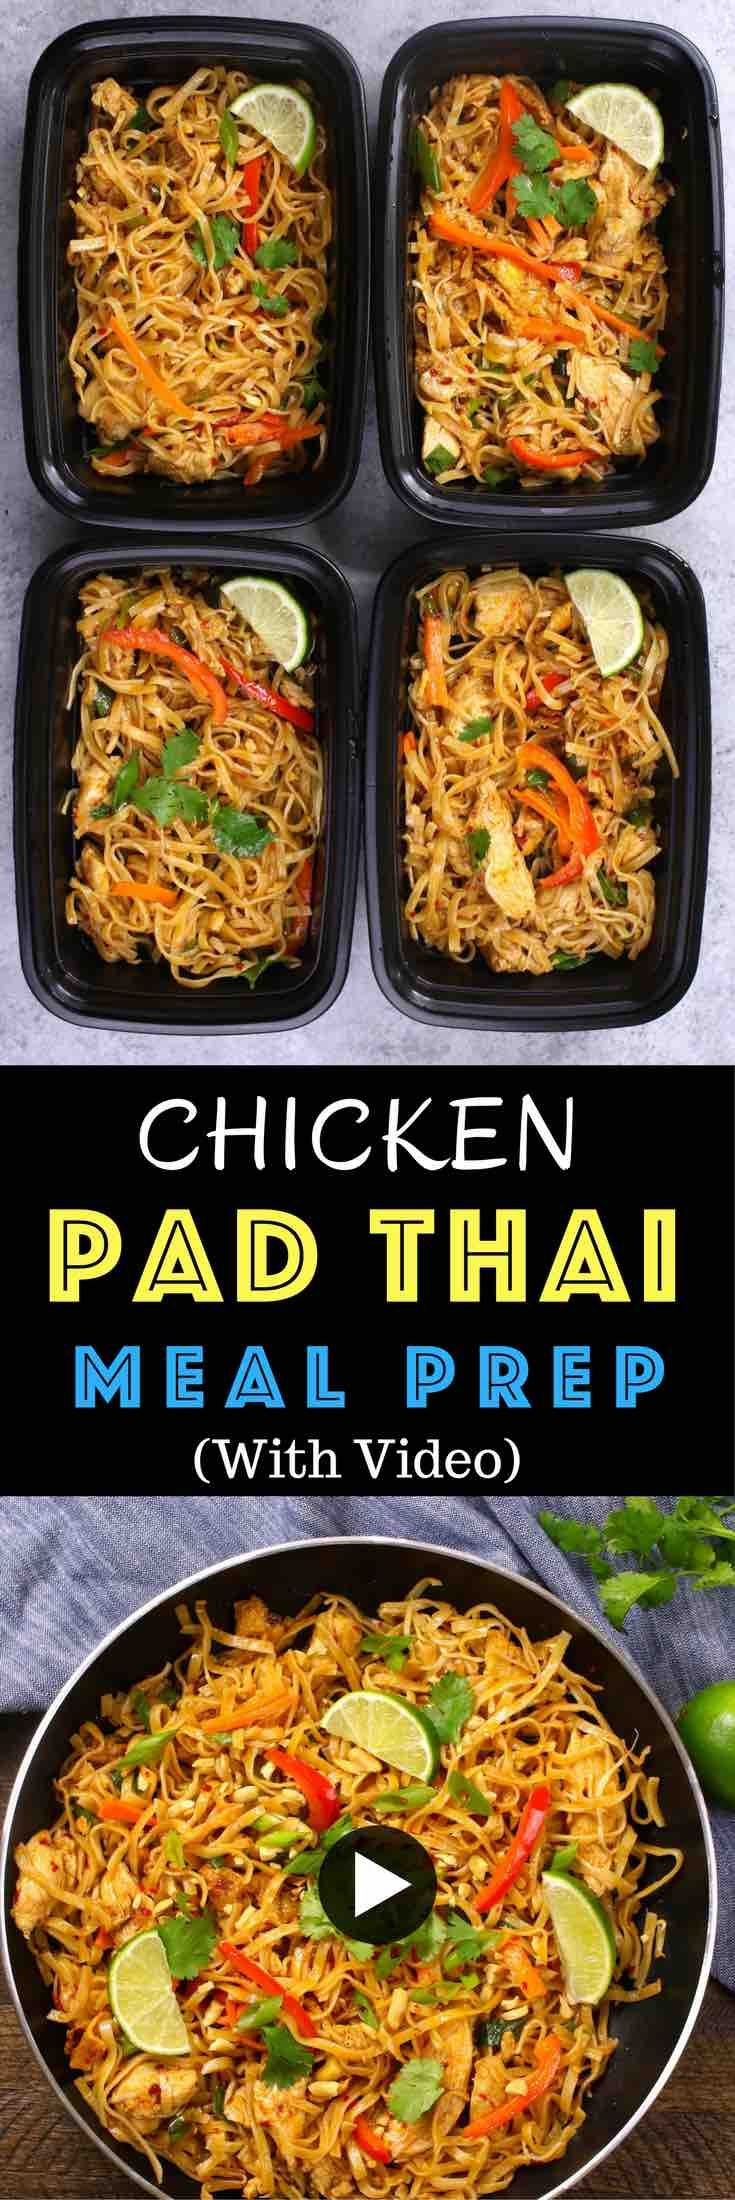 Save time and money when meal prep this authentic and delicious Chicken Pad Thai. In less than 30 minutes, you can cook dinner or lunch for the entire week! It's so much better than take outs. Make ahead recipe. Video recipe.   Tipbuzz.com